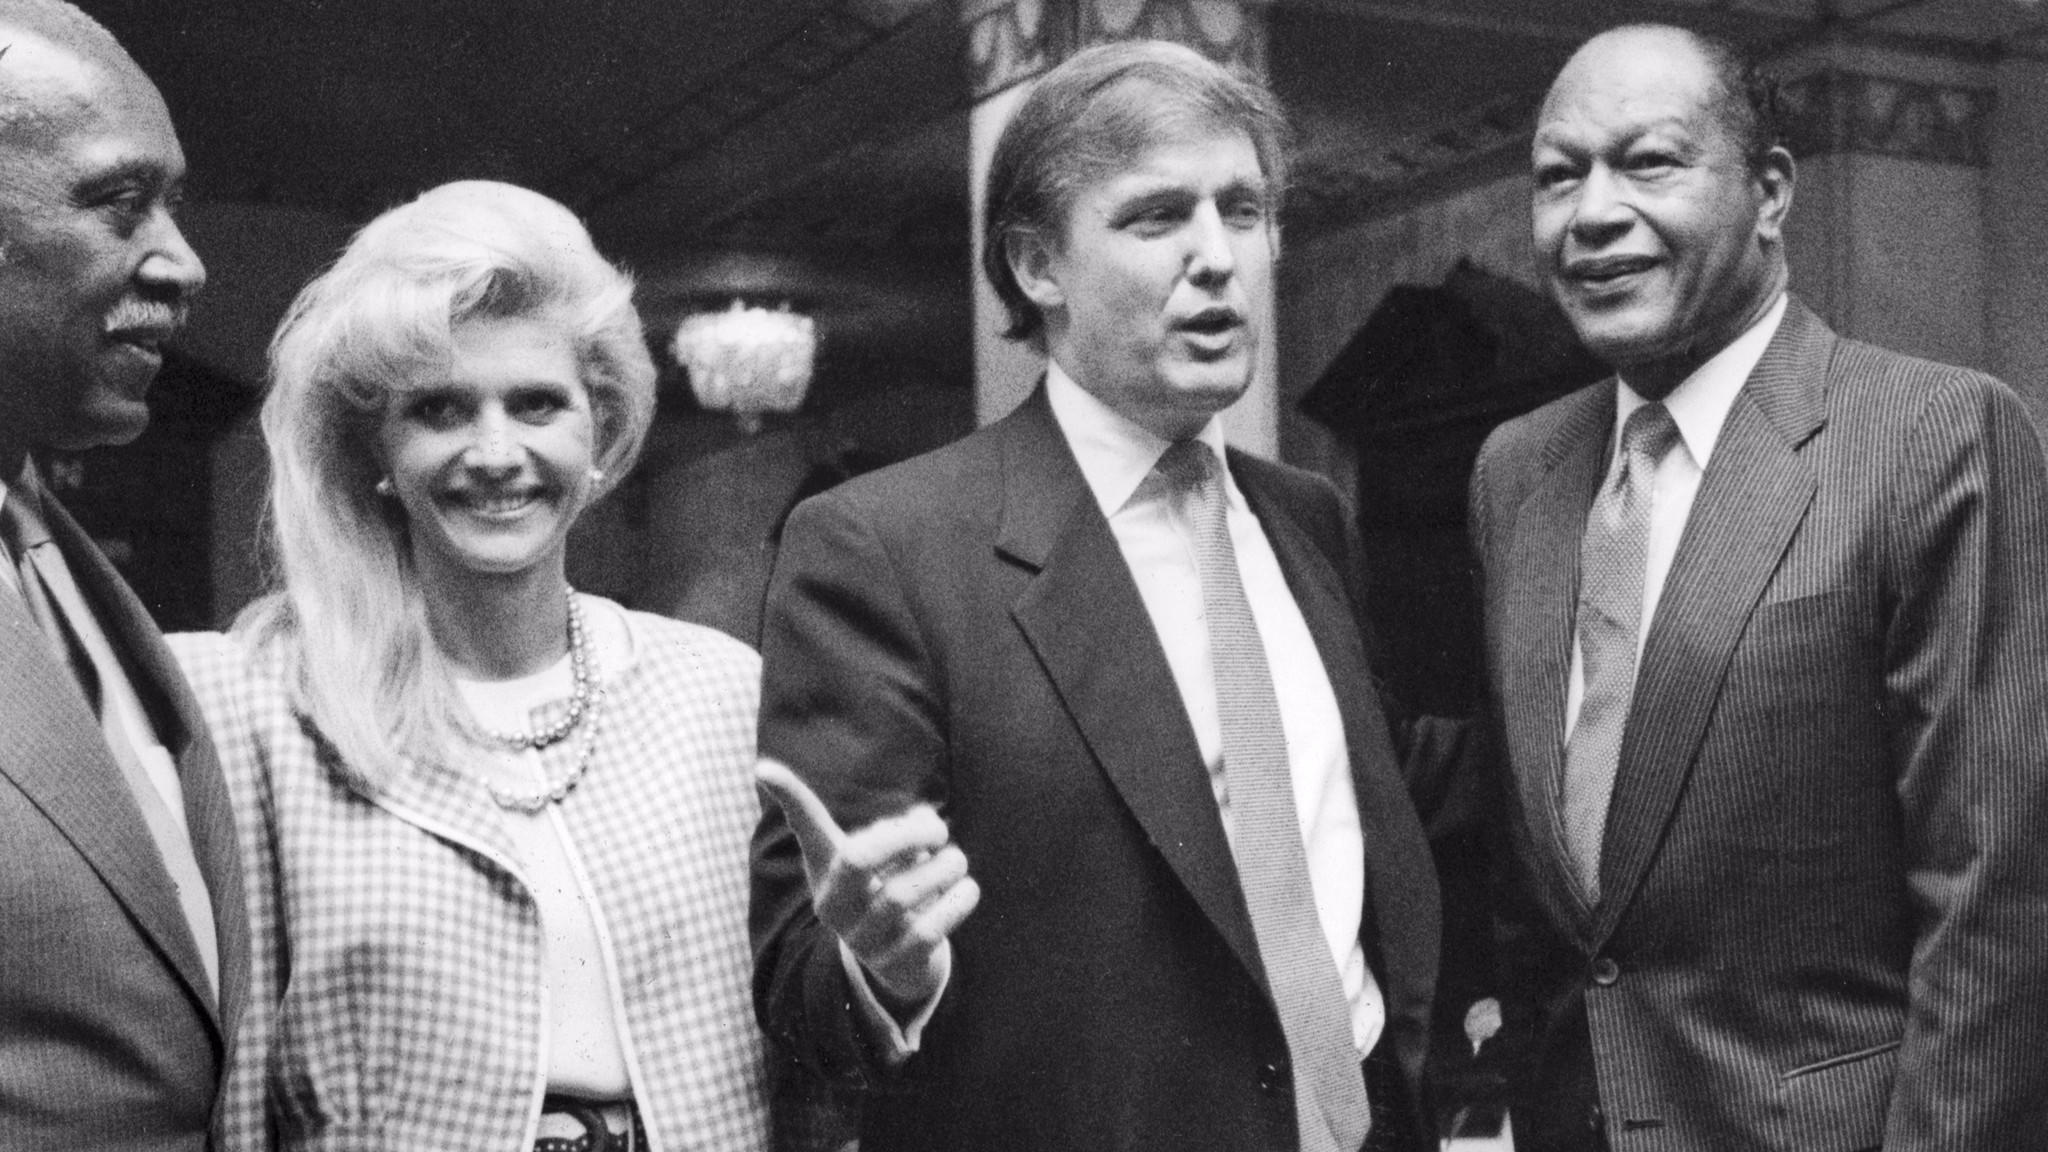 Nate Holden, left, Ivana Trump, Donald Trump and Tom Bradley in 1990. (Mindy Schauer / For The Times)